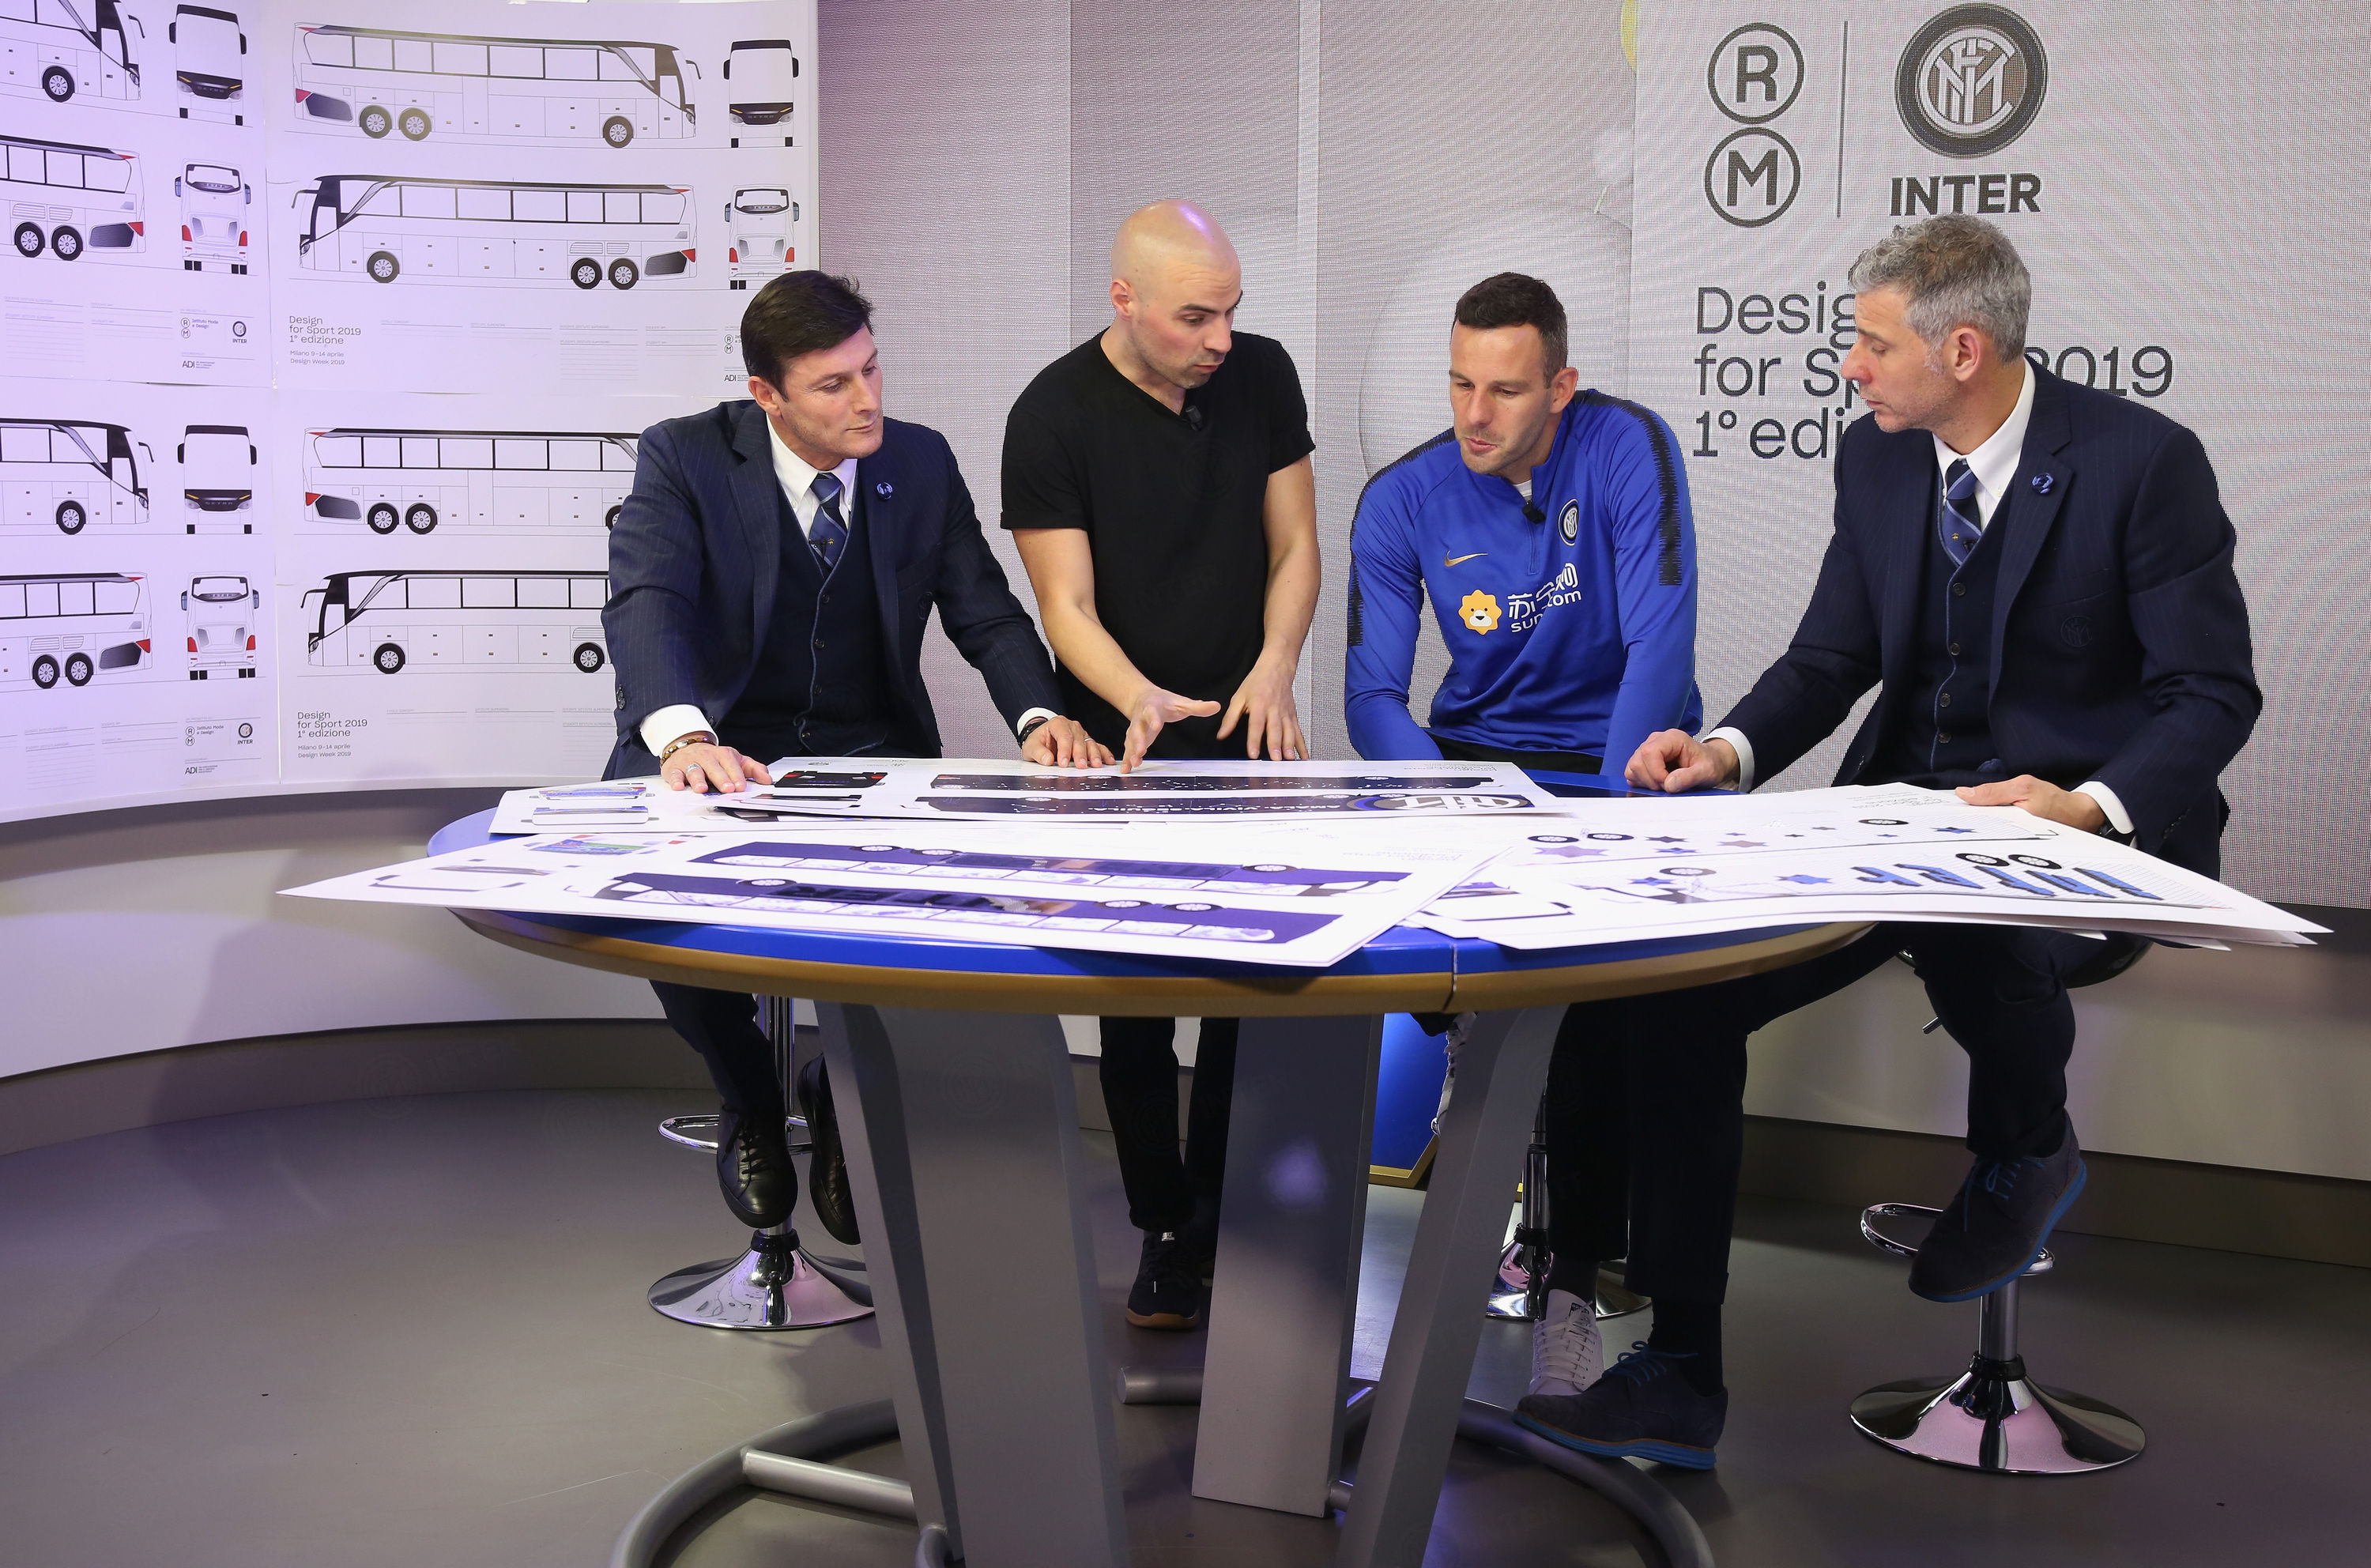 Design for Sport, submissions presented to the jury for the team bus